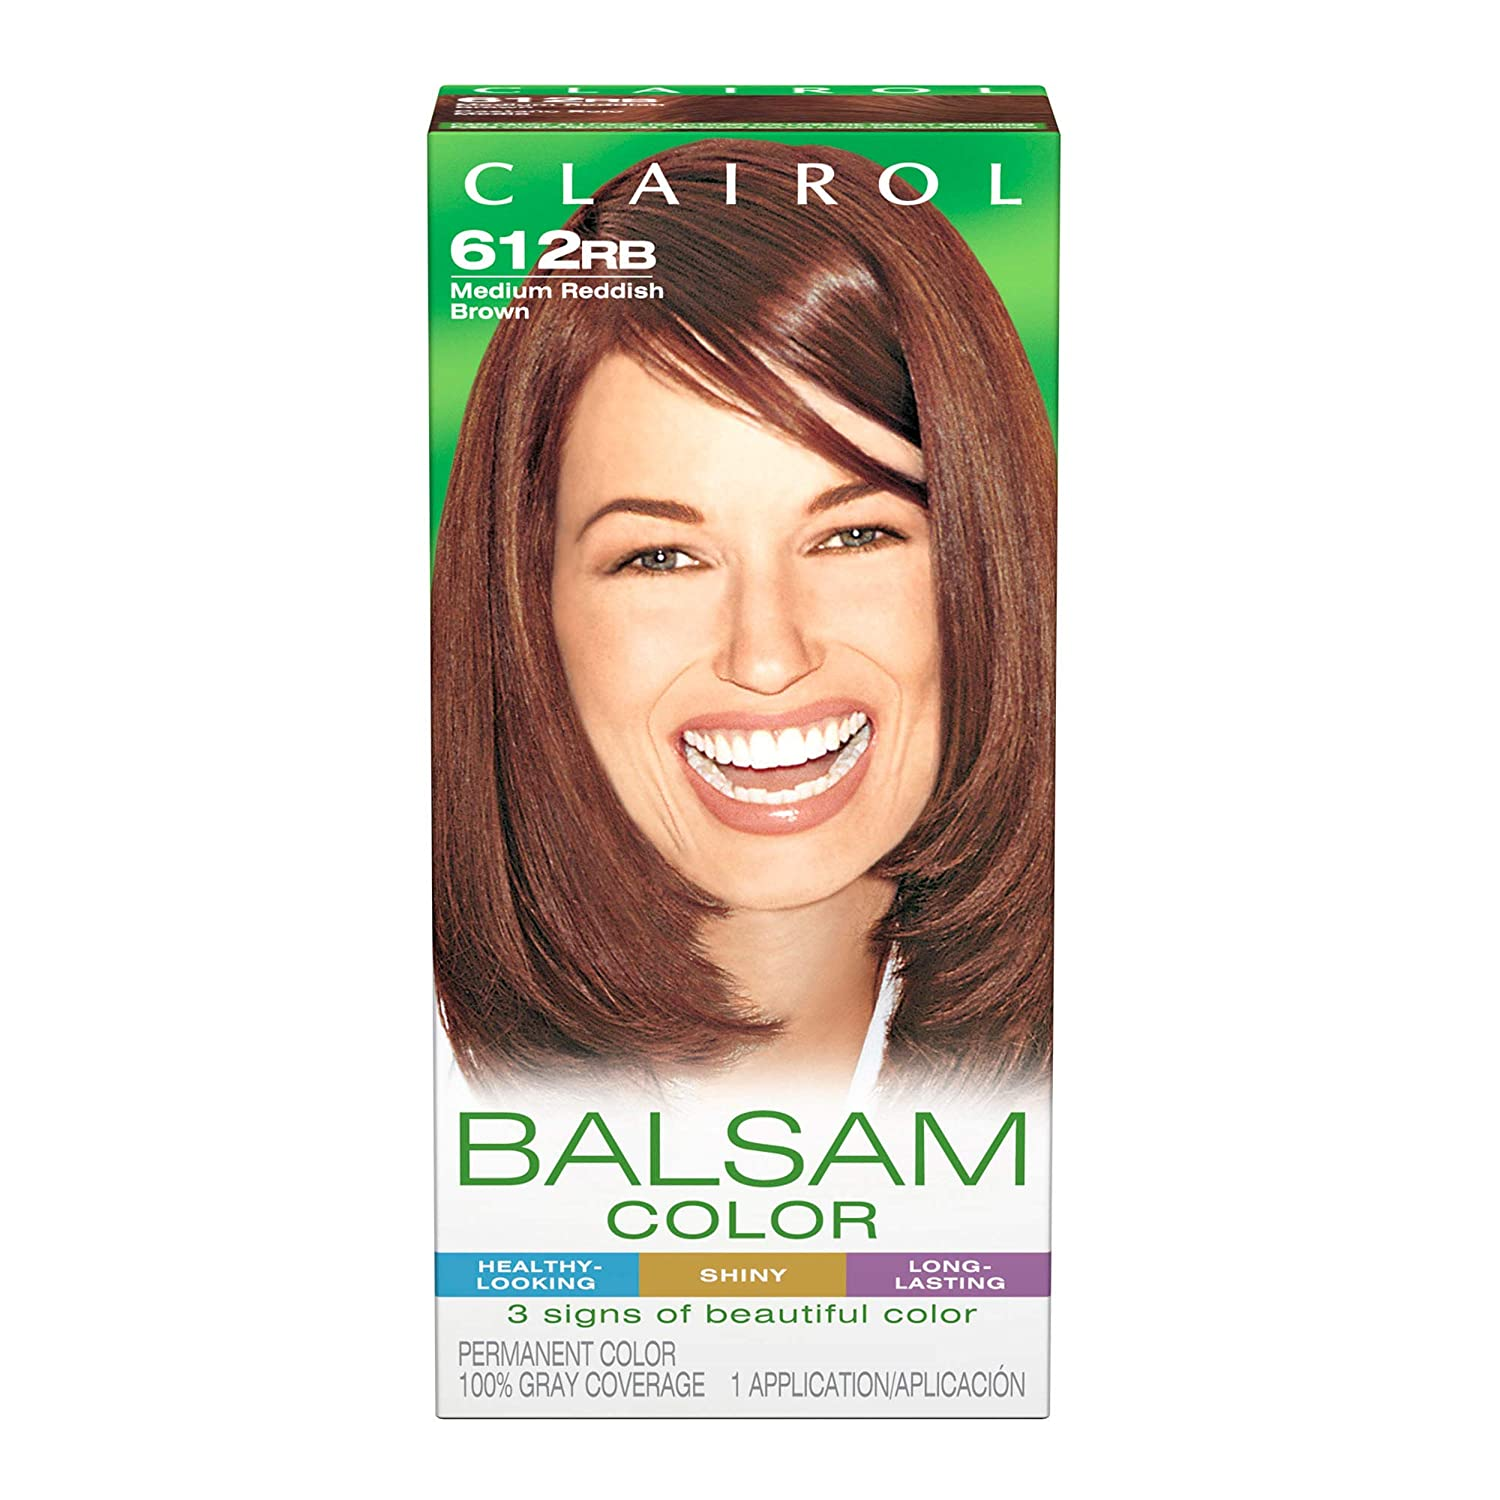 Clairol Balsam Hair Coloring Tools, 612rb Medium Reddish Brown